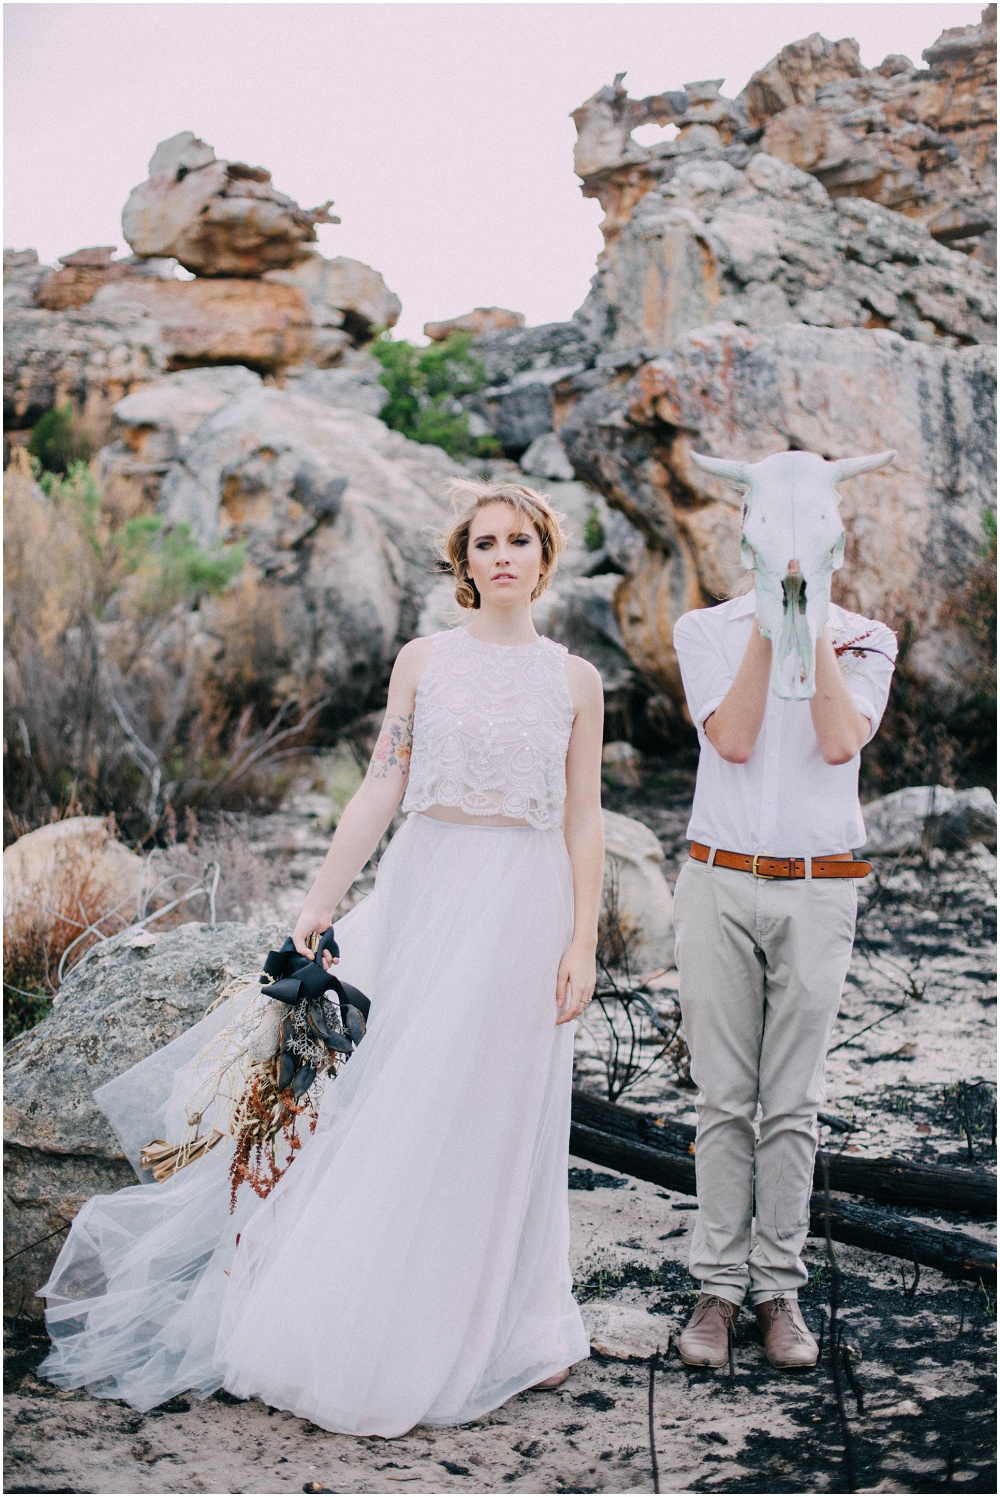 Ronel Kruger Cape Town Wedding and Lifestyle Photographer_4031.jpg